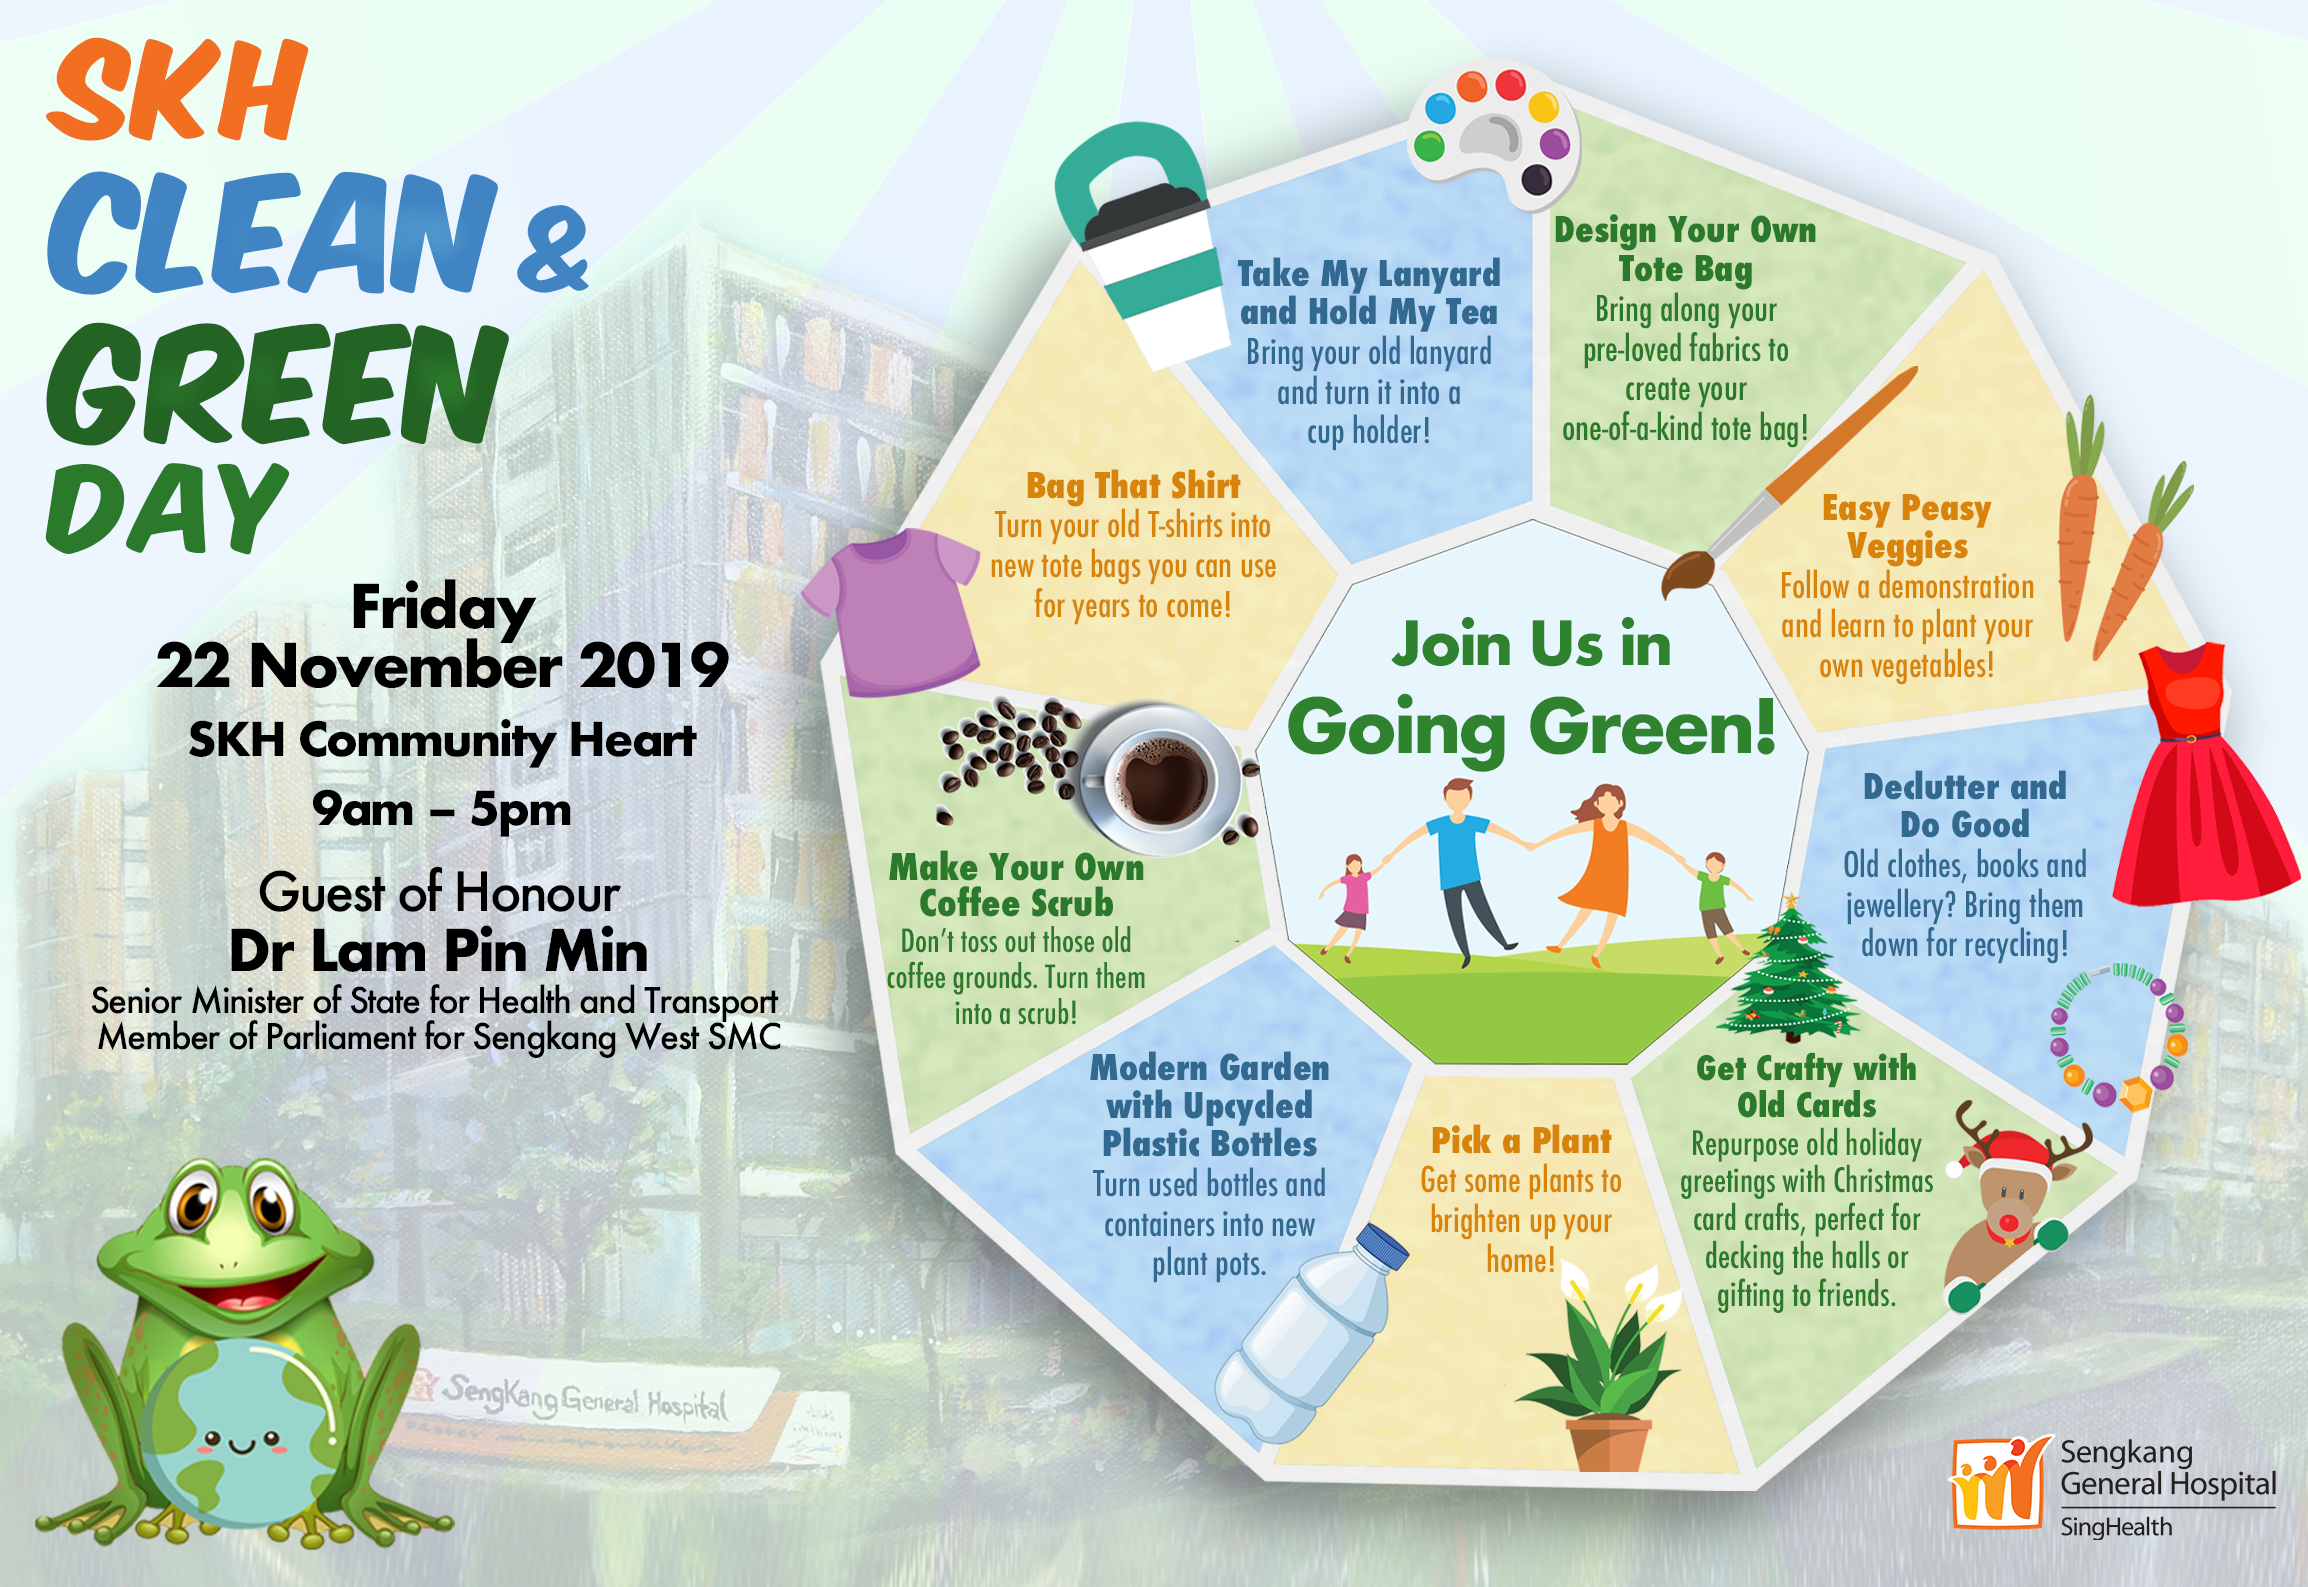 SKH Clean and Green Day 2019